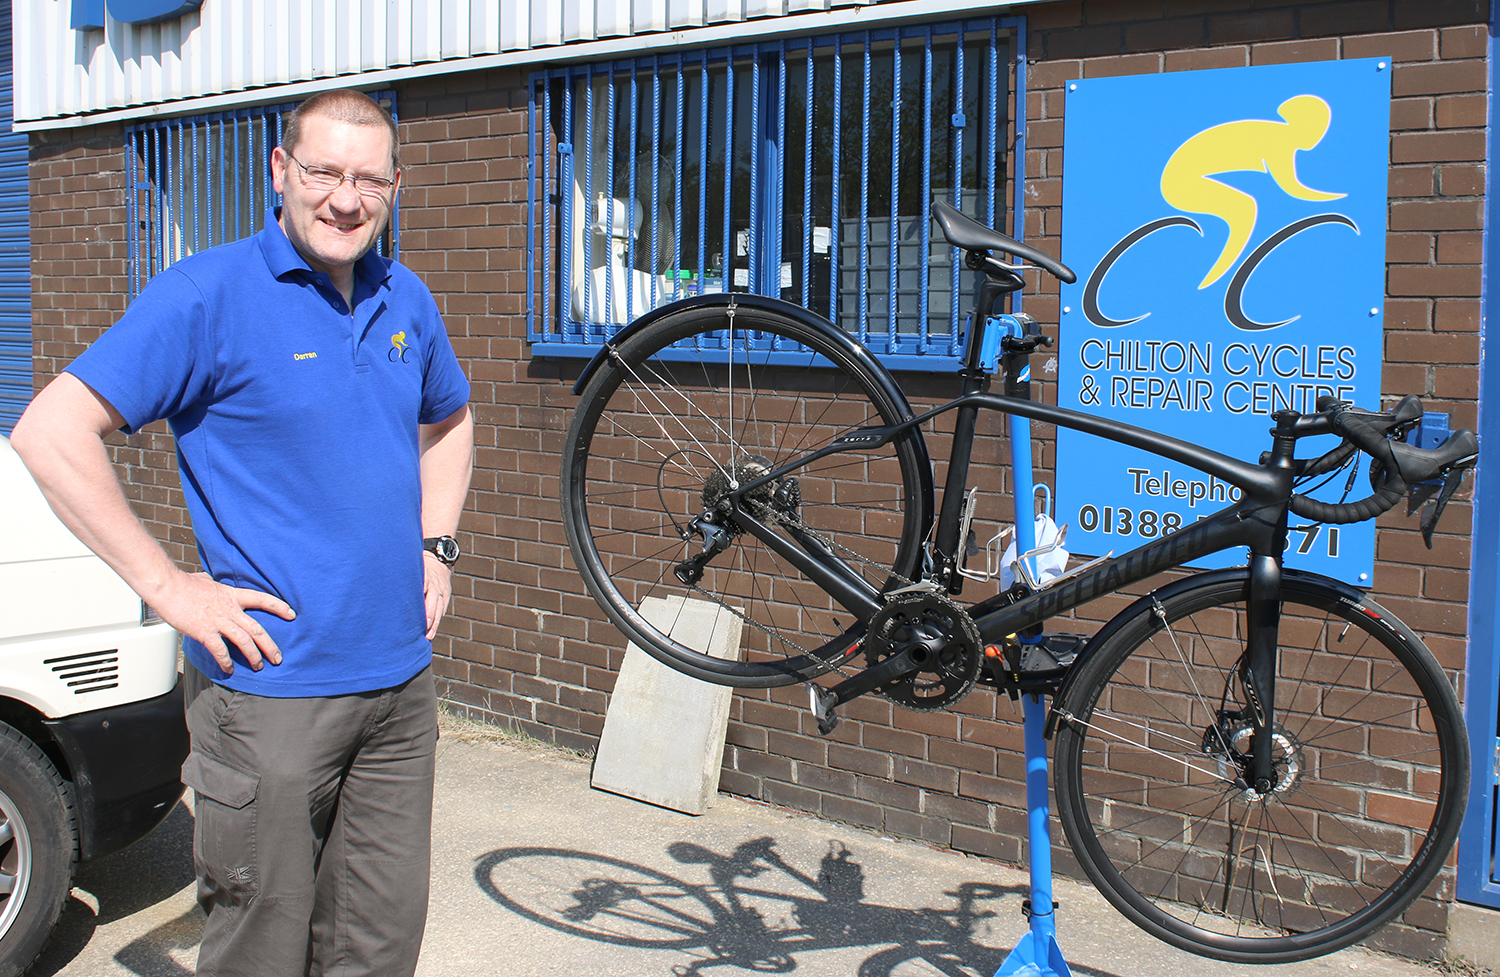 Aycliffe Entrepreneur Opens Cycle Business